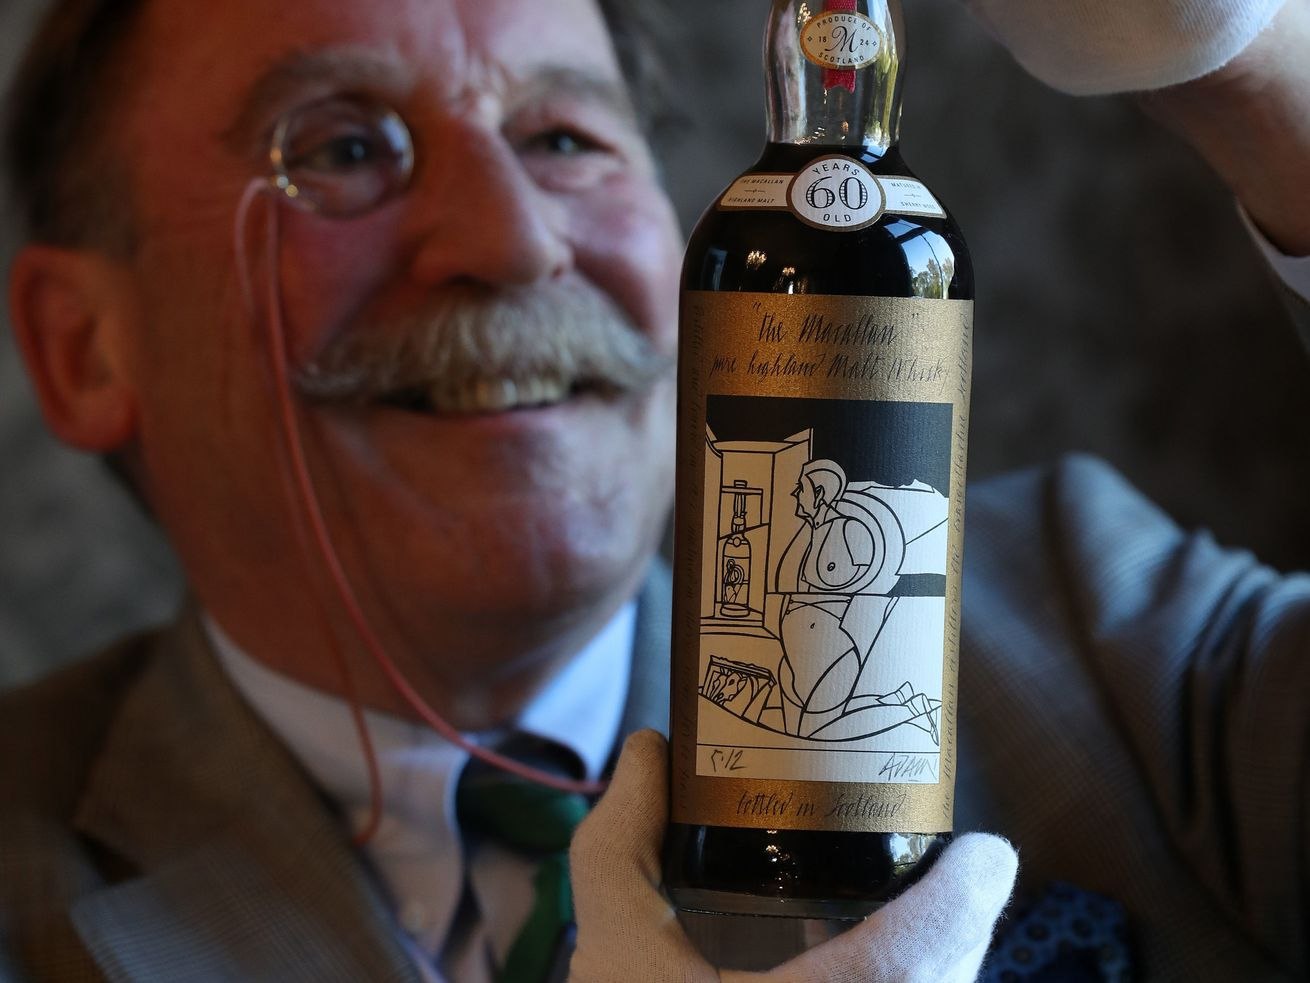 Whisky expert Charles MacLean inspects a bottle of Macallan Valerio Adami 60-year-old 1926, which sold for a record-breaking $1.1 million at auction last week.